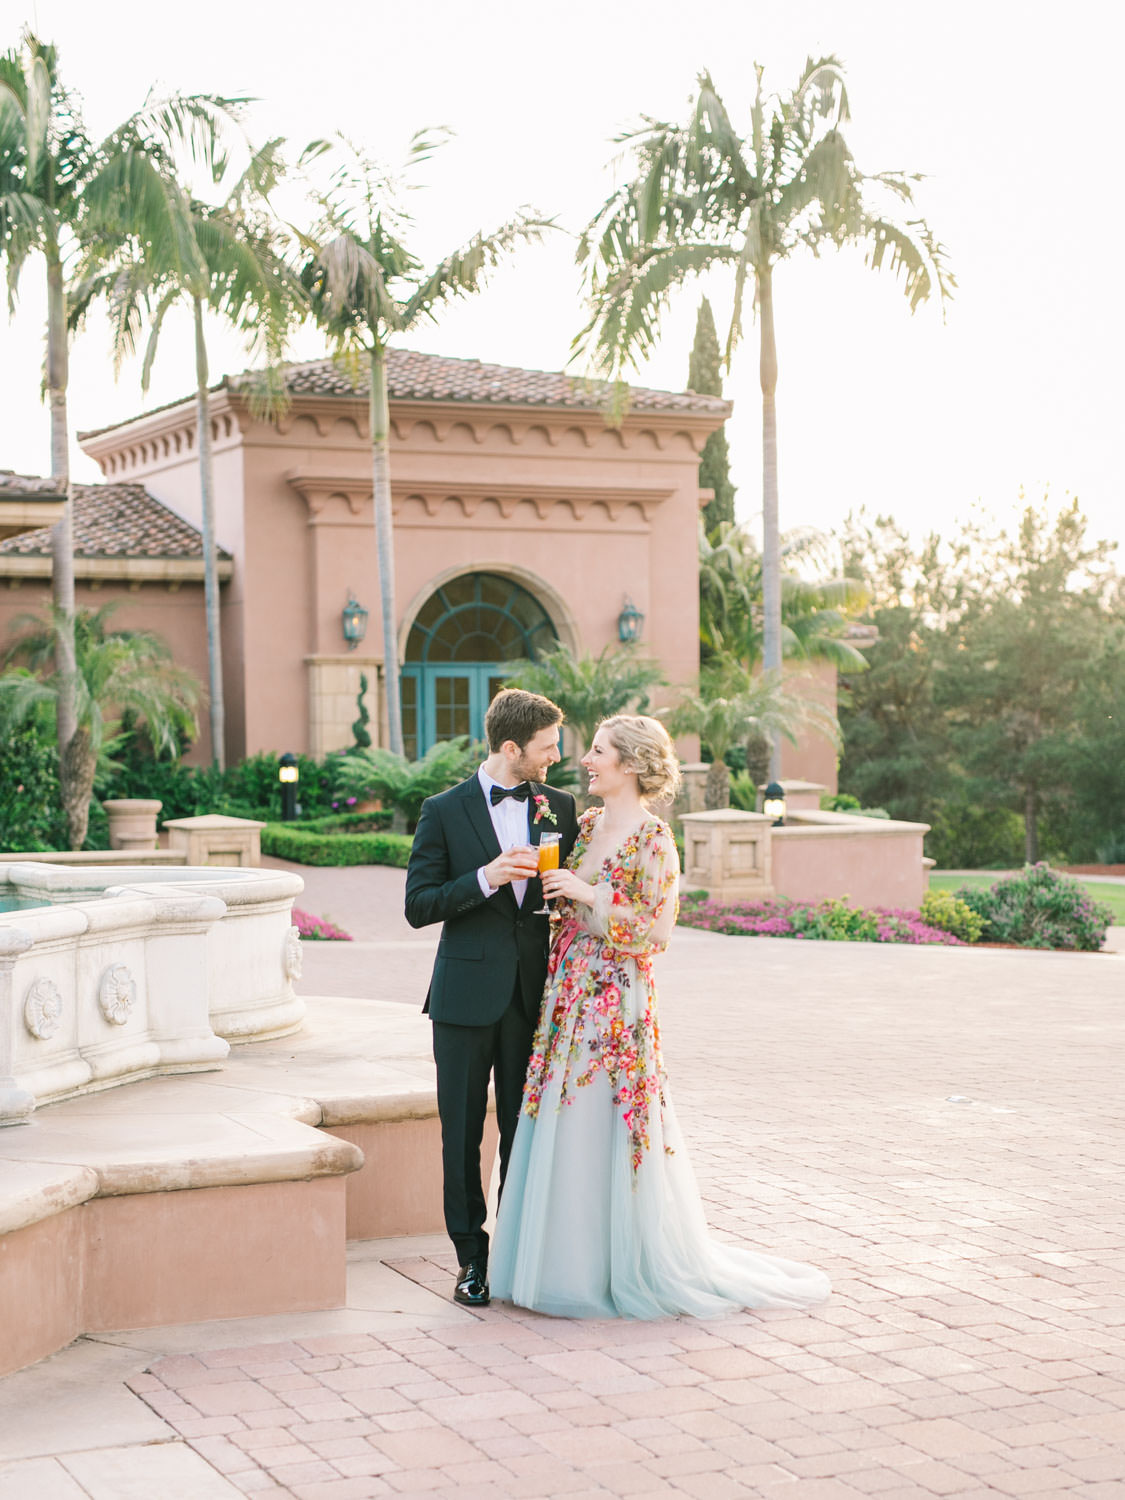 Bride and groom sunset portraits with signature cocktails. Bride wearing colorful Marchesa wedding gown with blue, pink, yellow, green, and orange floral appliques. A Wedding Photographer's Fairmont Grand Del Mar Wedding